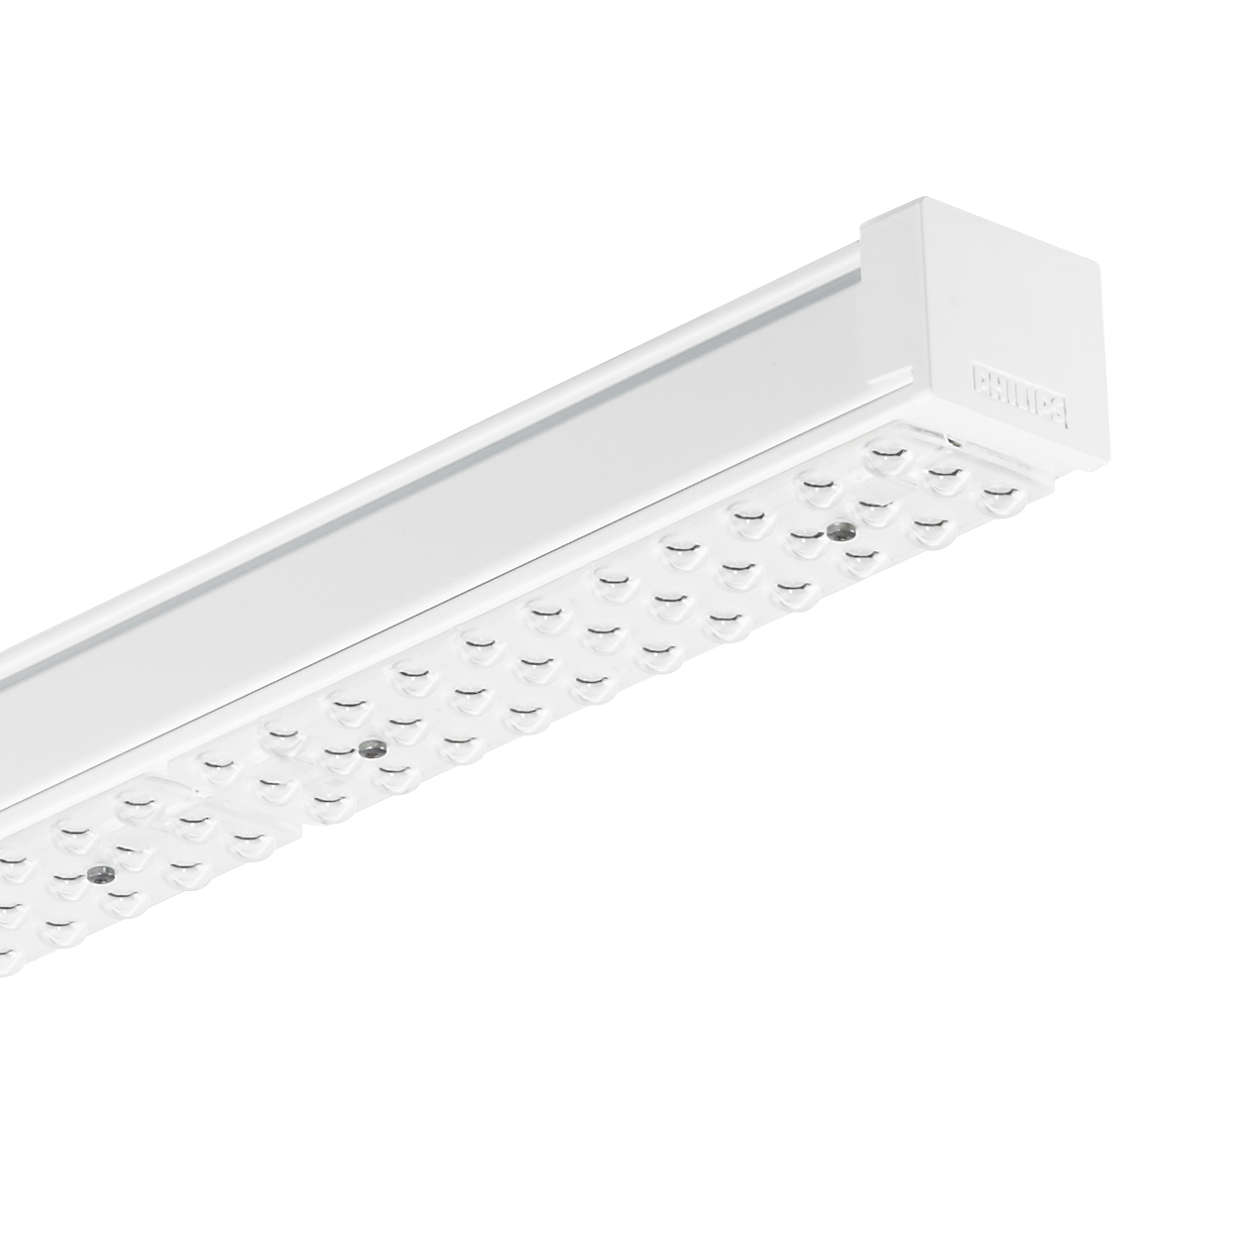 Maxos LED inserts for TTX400 – efficiency champion with great payback